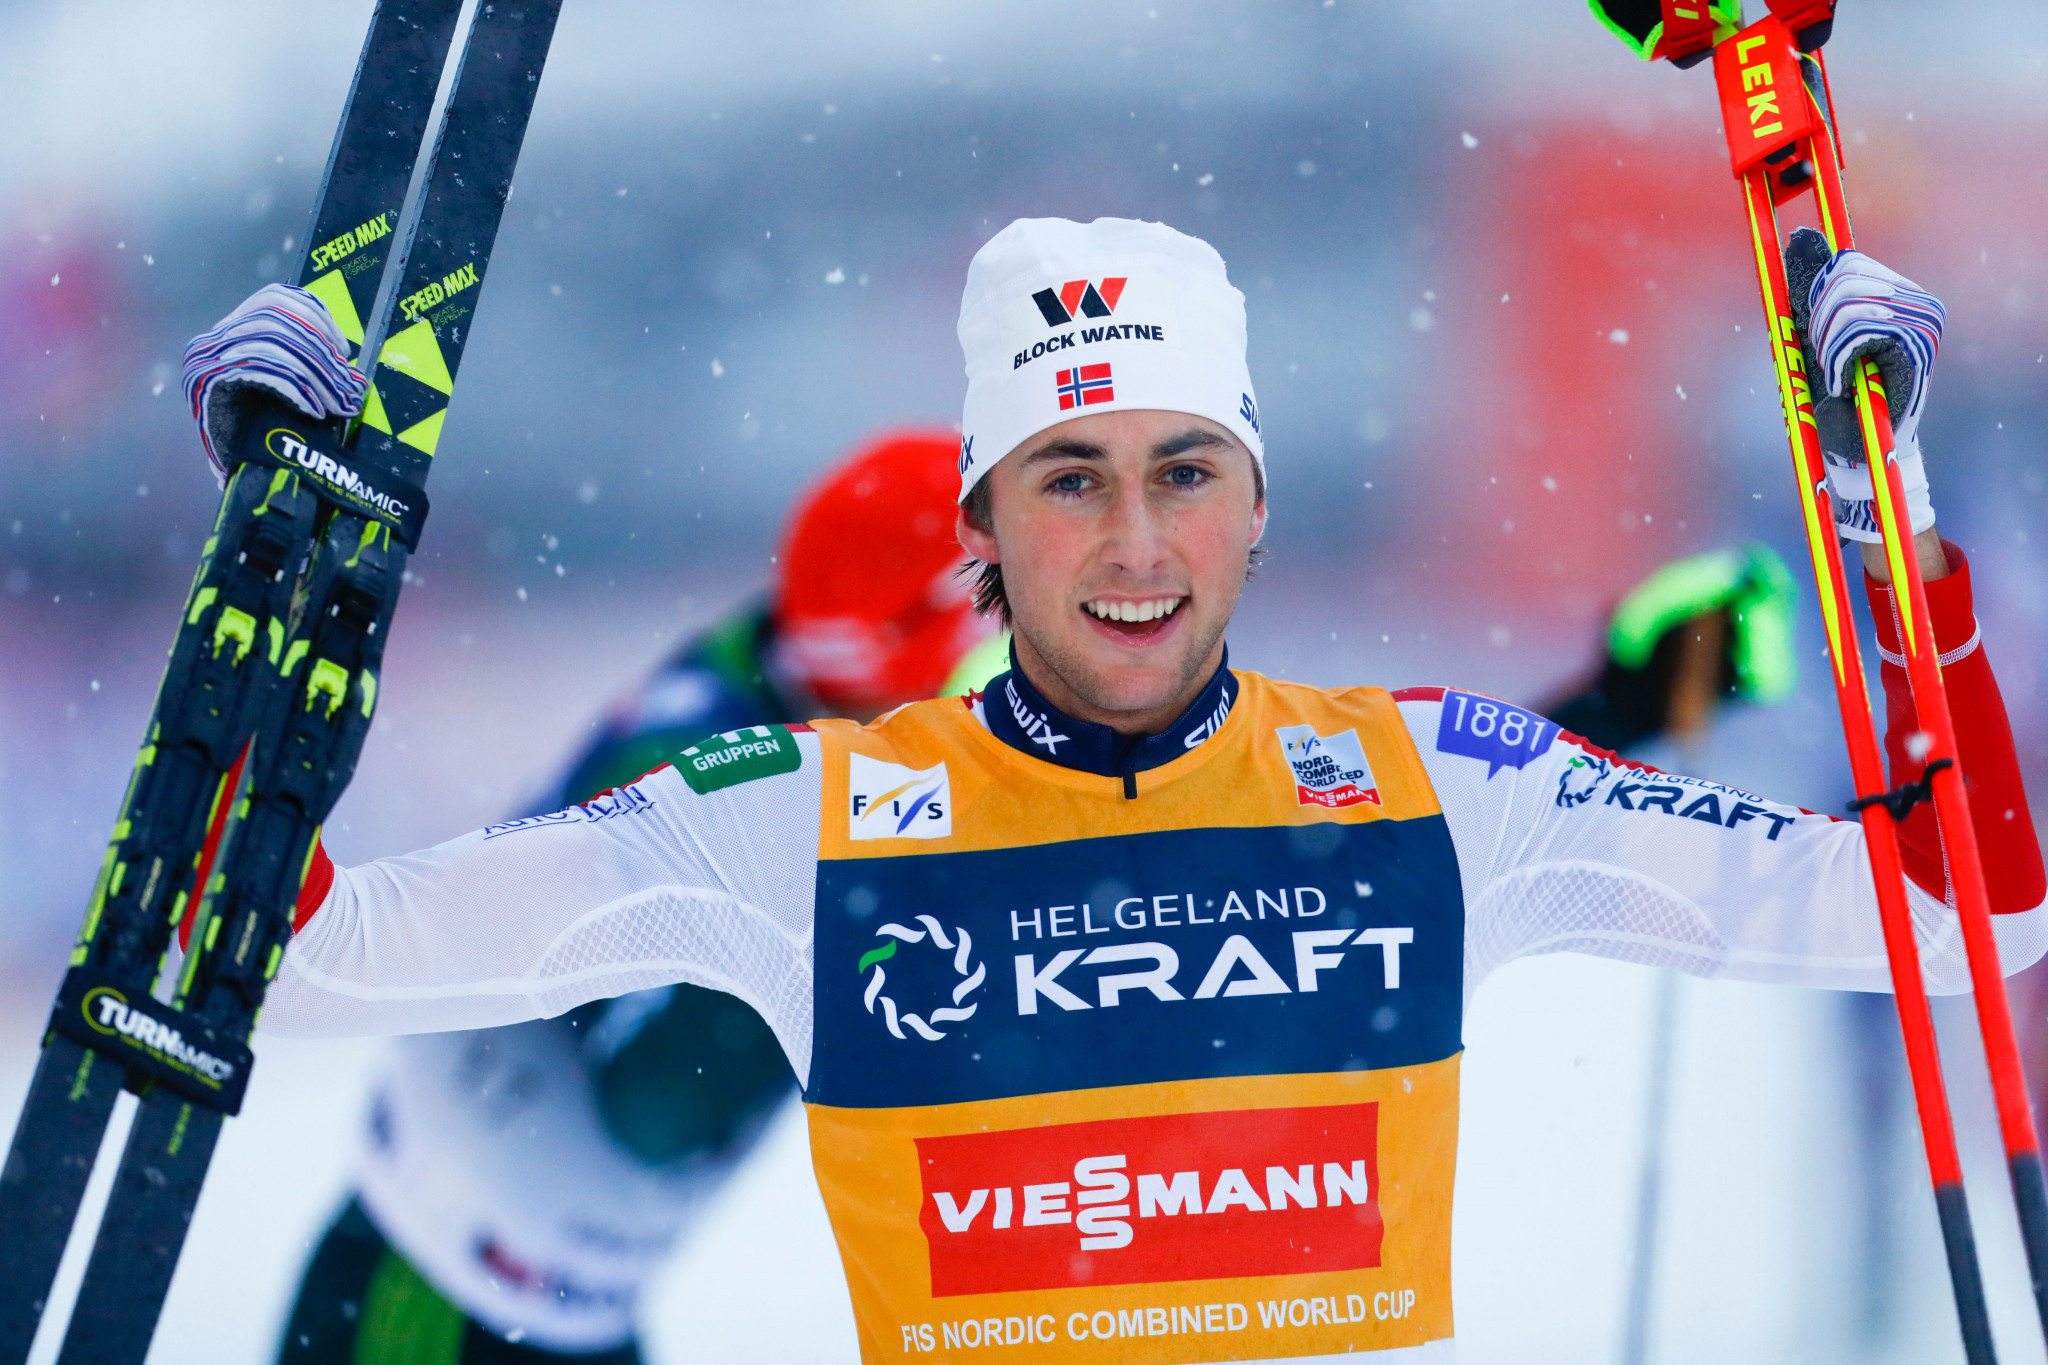 Riiber wins again at FIS Nordic Combined World Cup in Trondheim